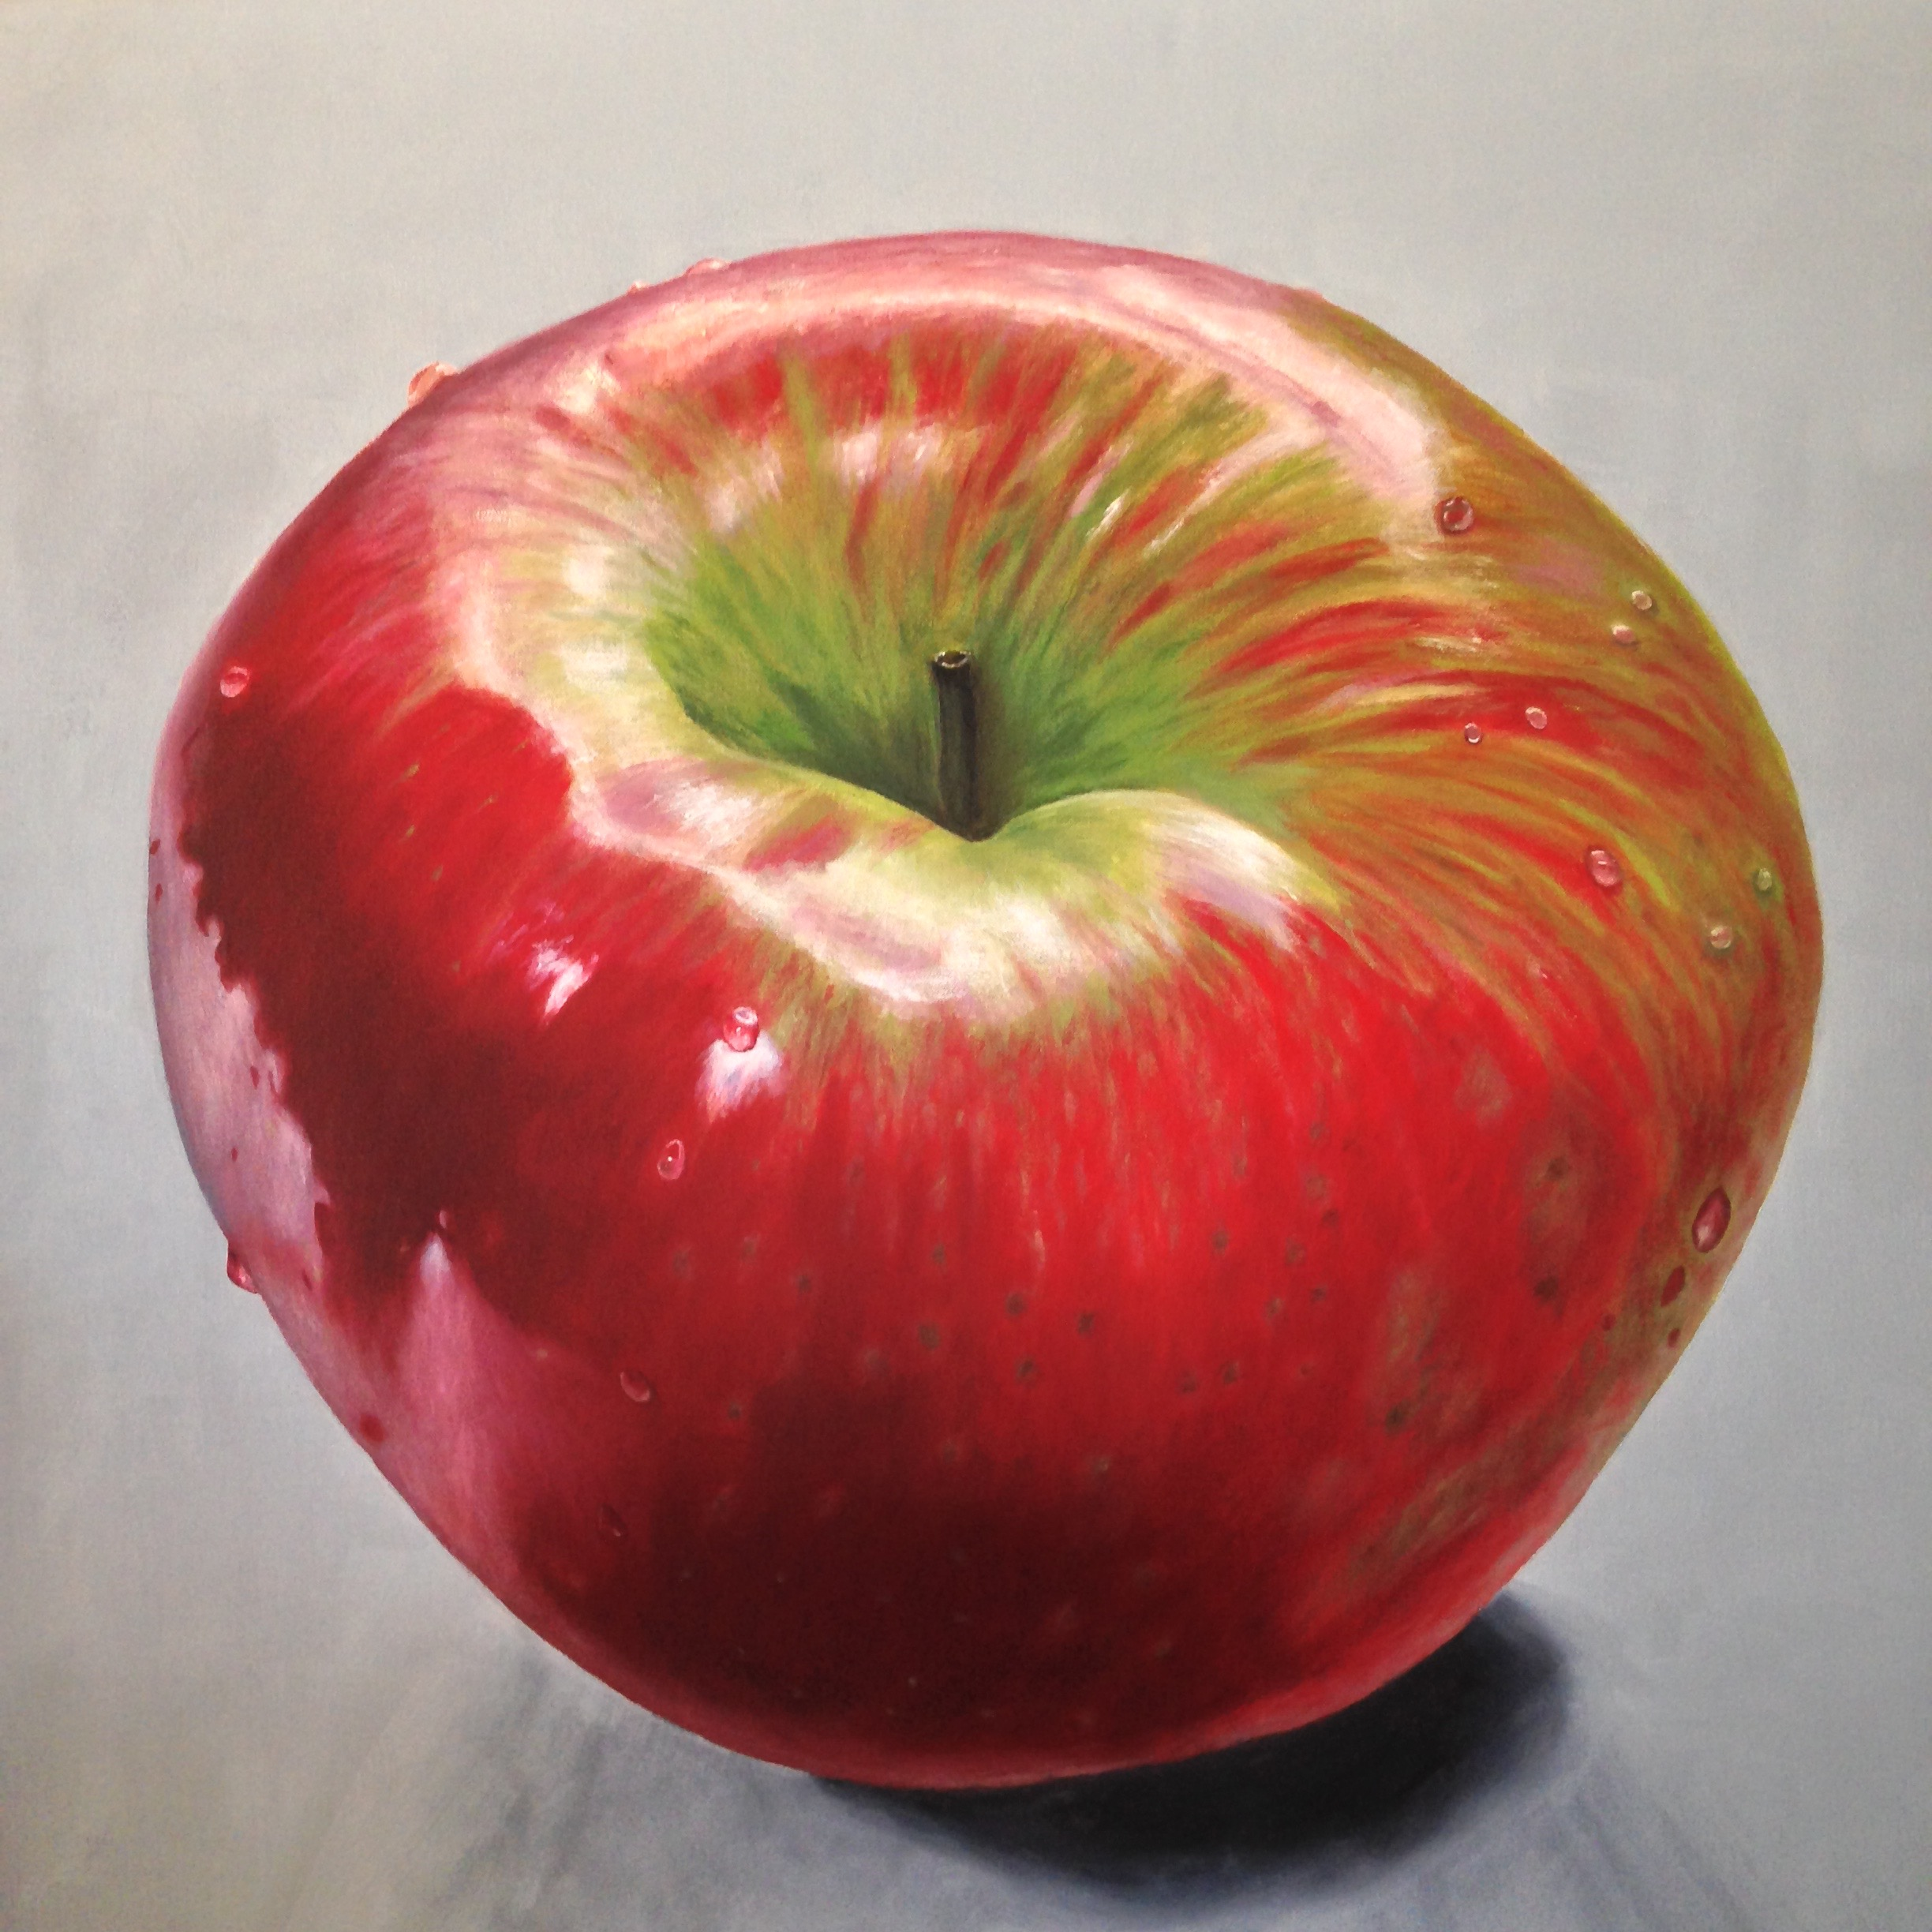 Large Honeycrisp